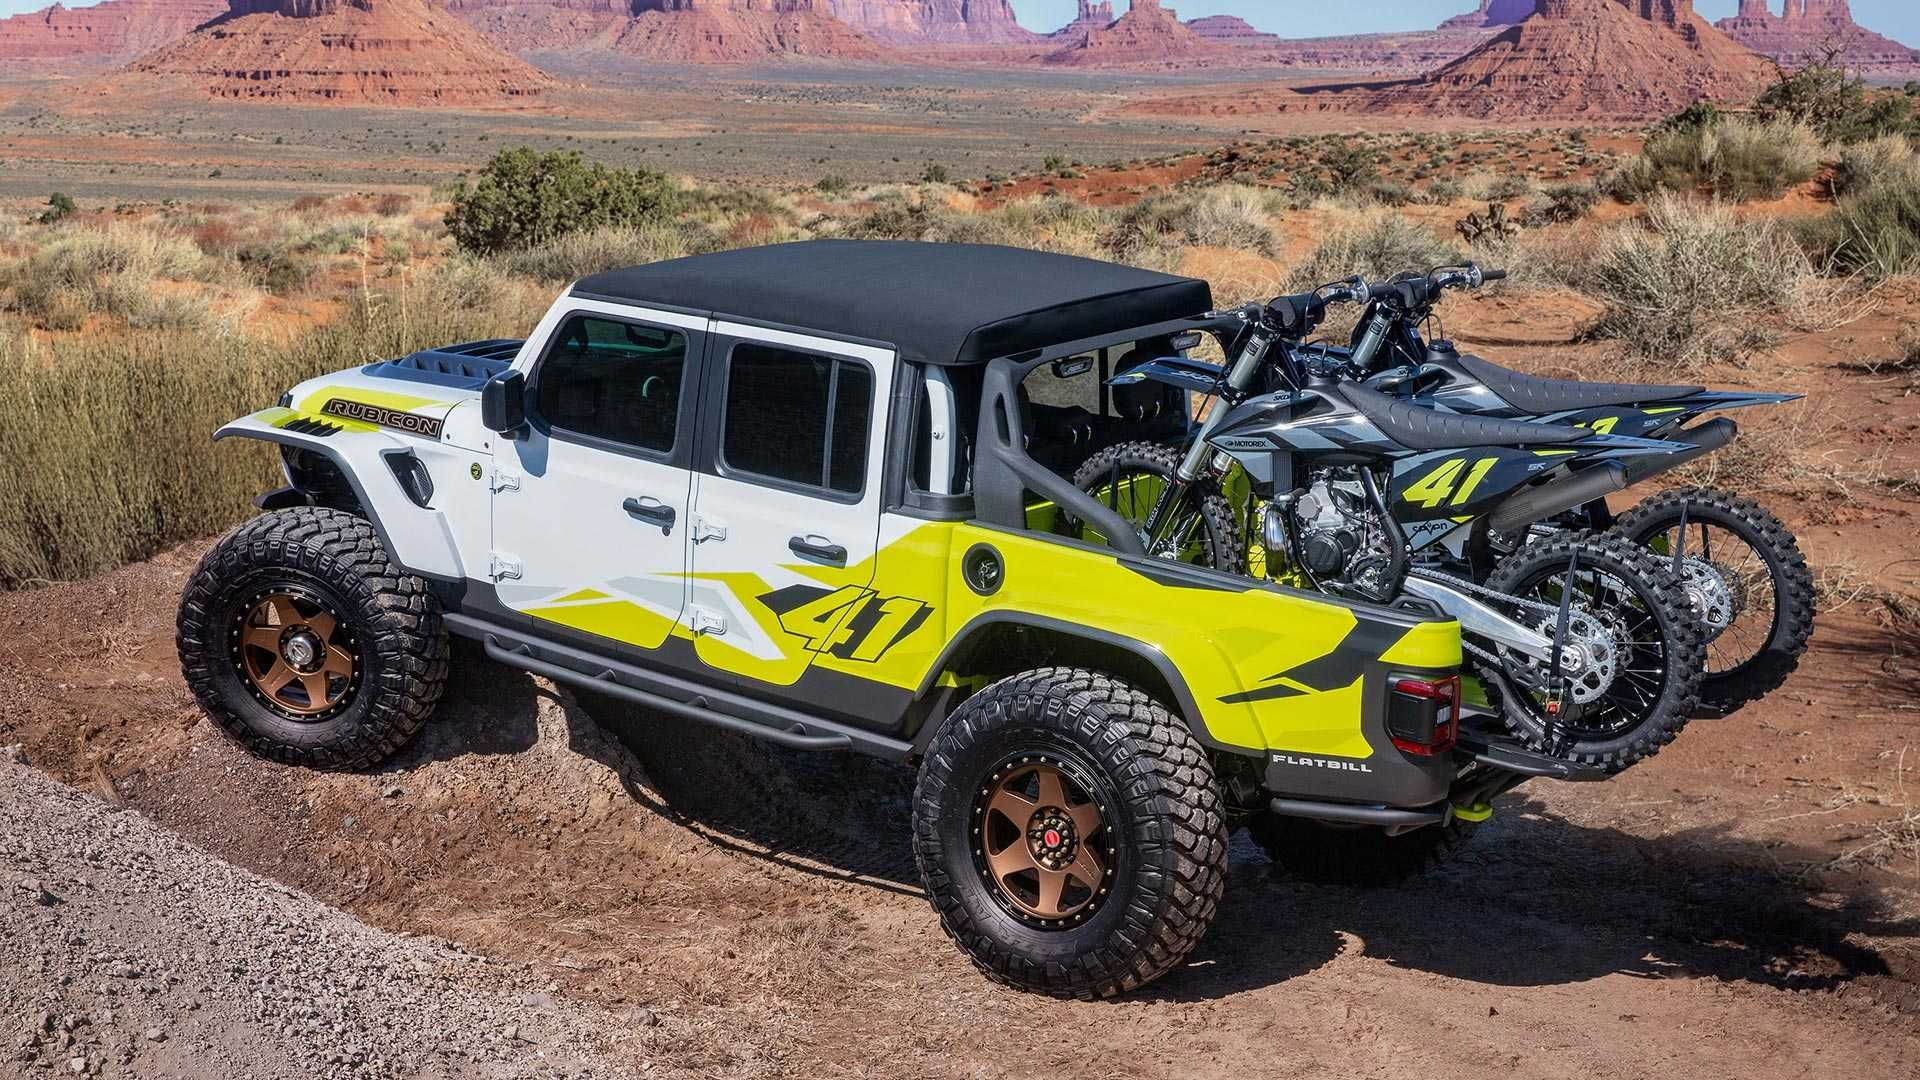 The Jeep Gladiator Flatbill Is A Purpose Built Dirt Bike Hauler With Modified Pieces That Facilitate Getting Your Bikes Jeep Gladiator Jeep Easter Jeep Safari